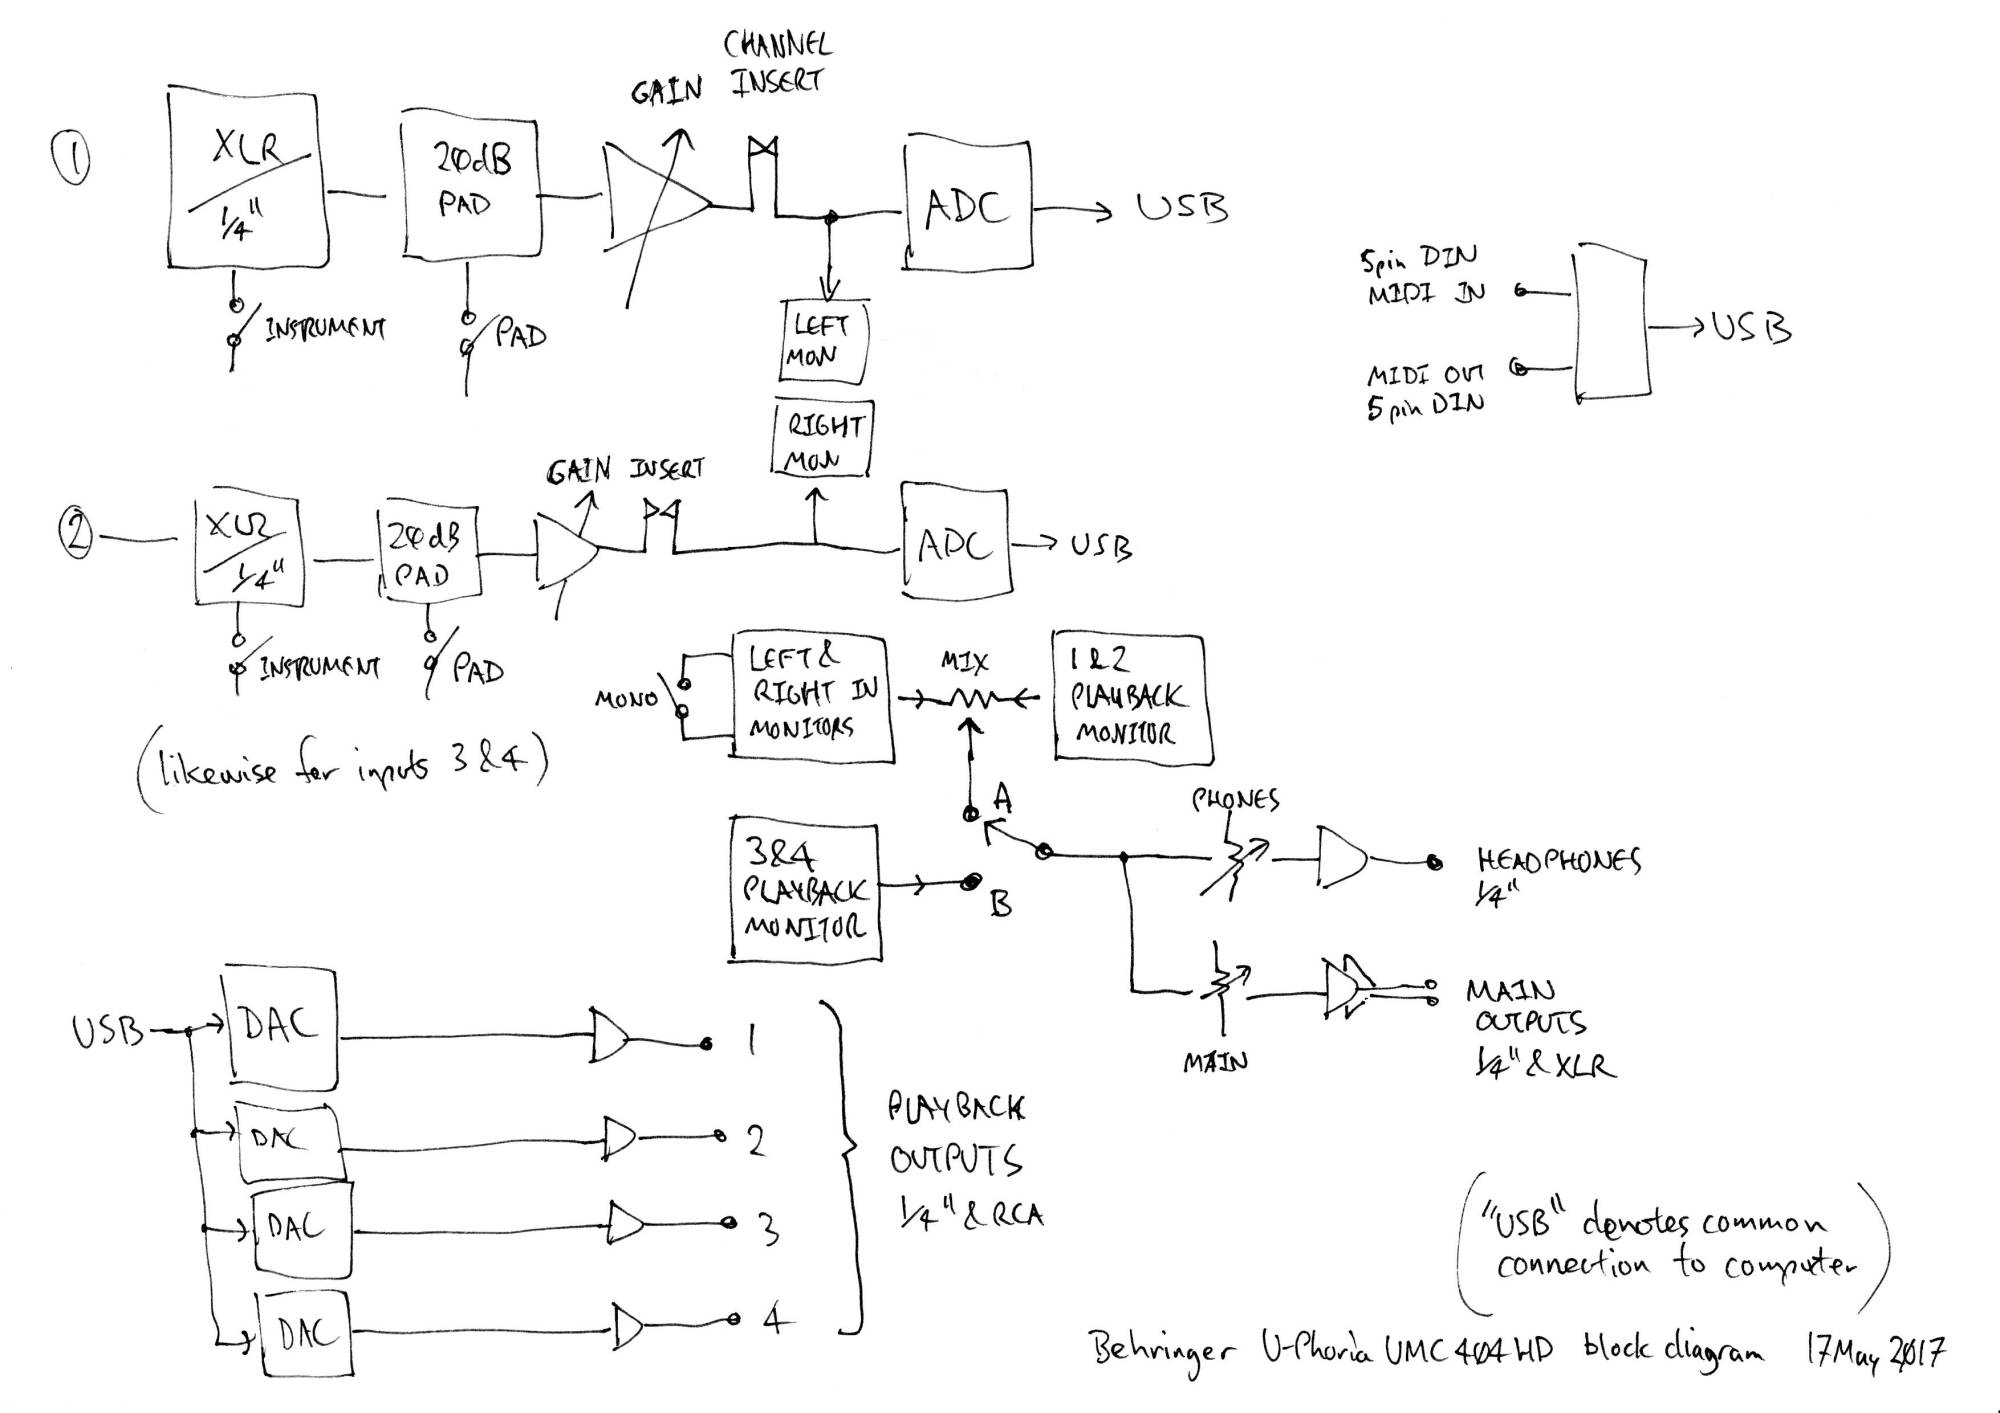 hight resolution of hand drawn diagram of behringer umc404hd